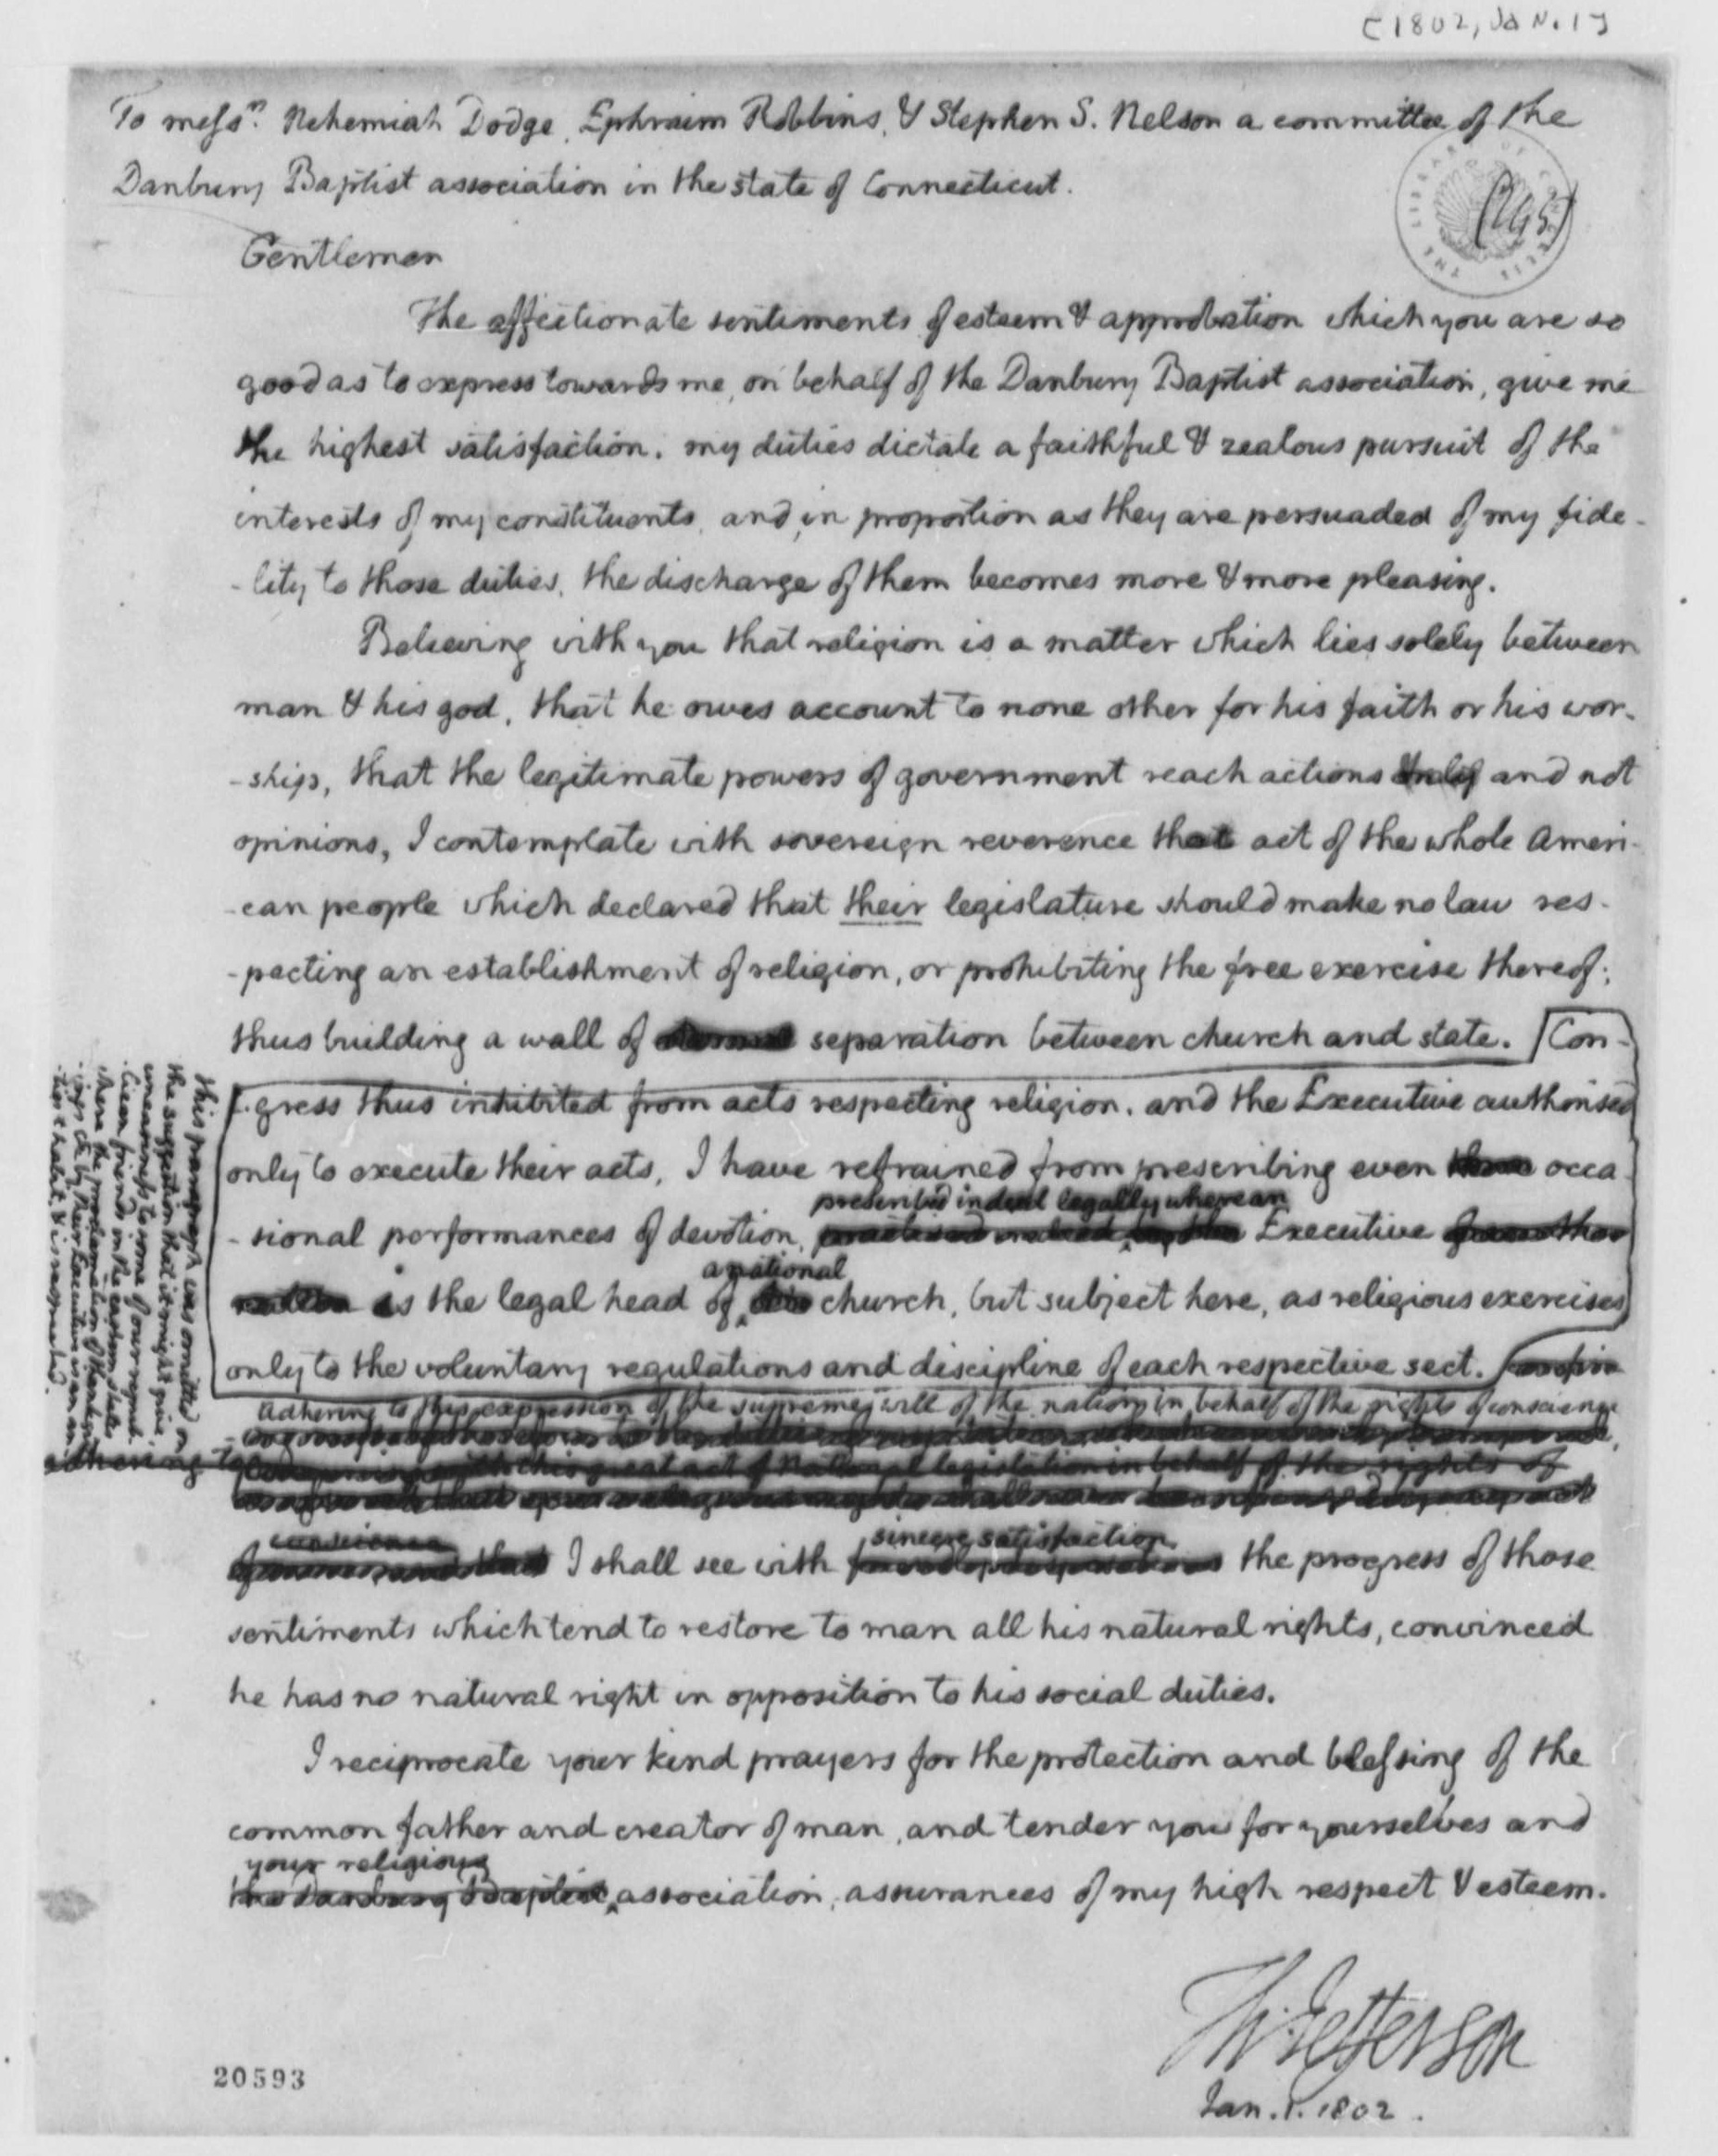 Jefferson's letter to the baptists, 1801.